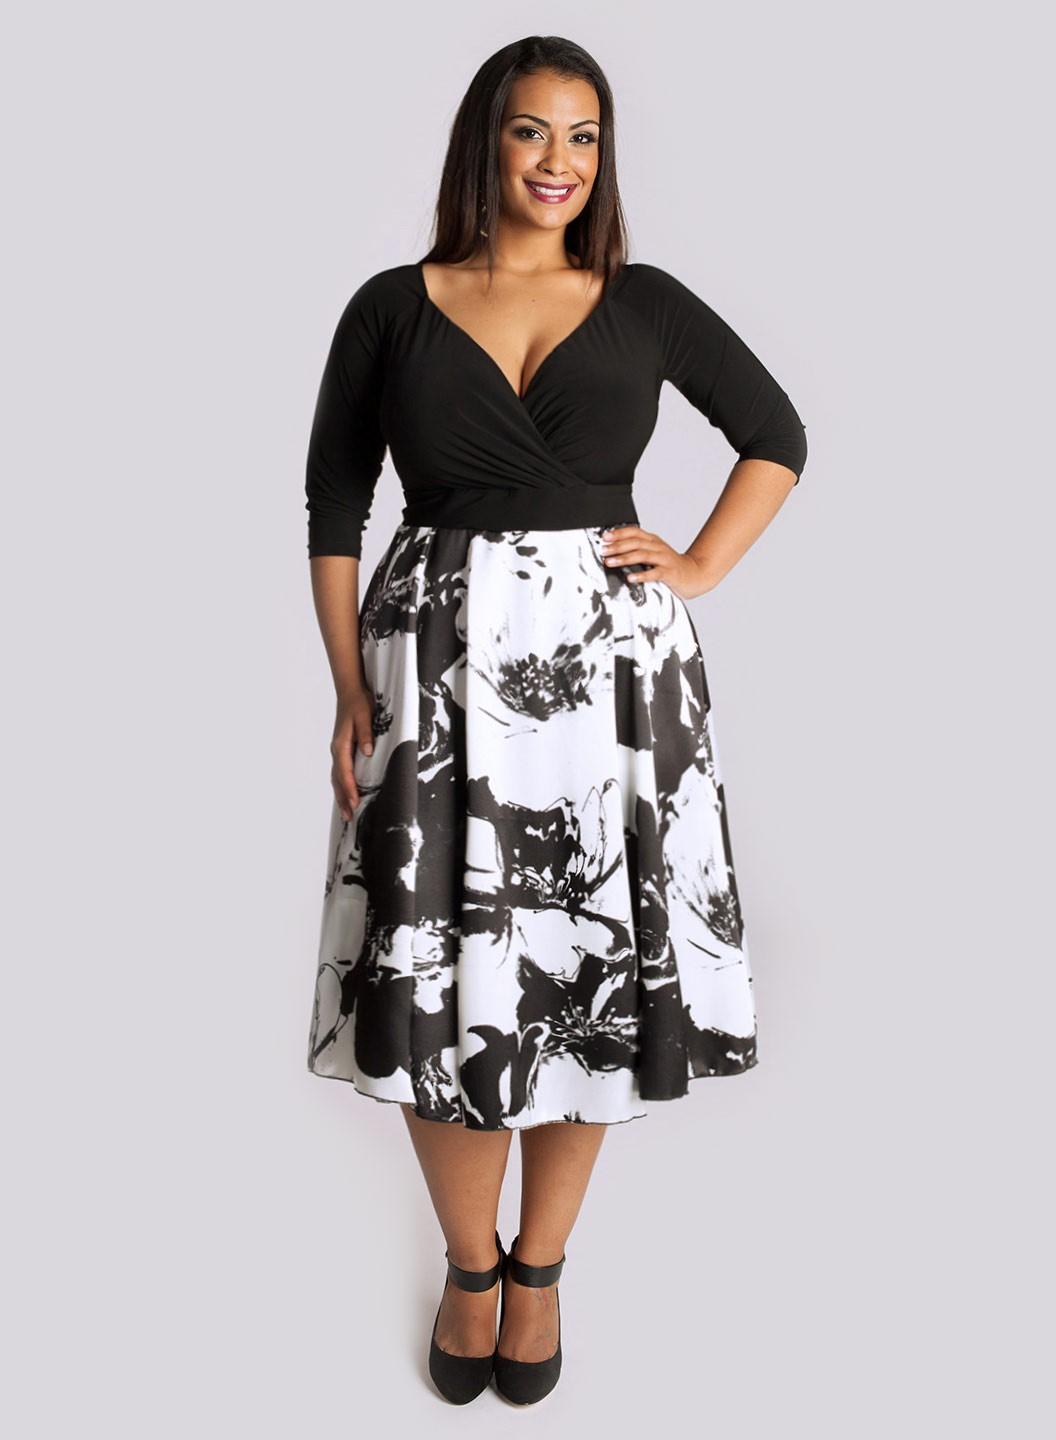 Autograph specialises in plus size women's fashion styles in sizes 14+. Free delivery on all orders over $80 to Australia and New Zealand. Now with Afterpay!